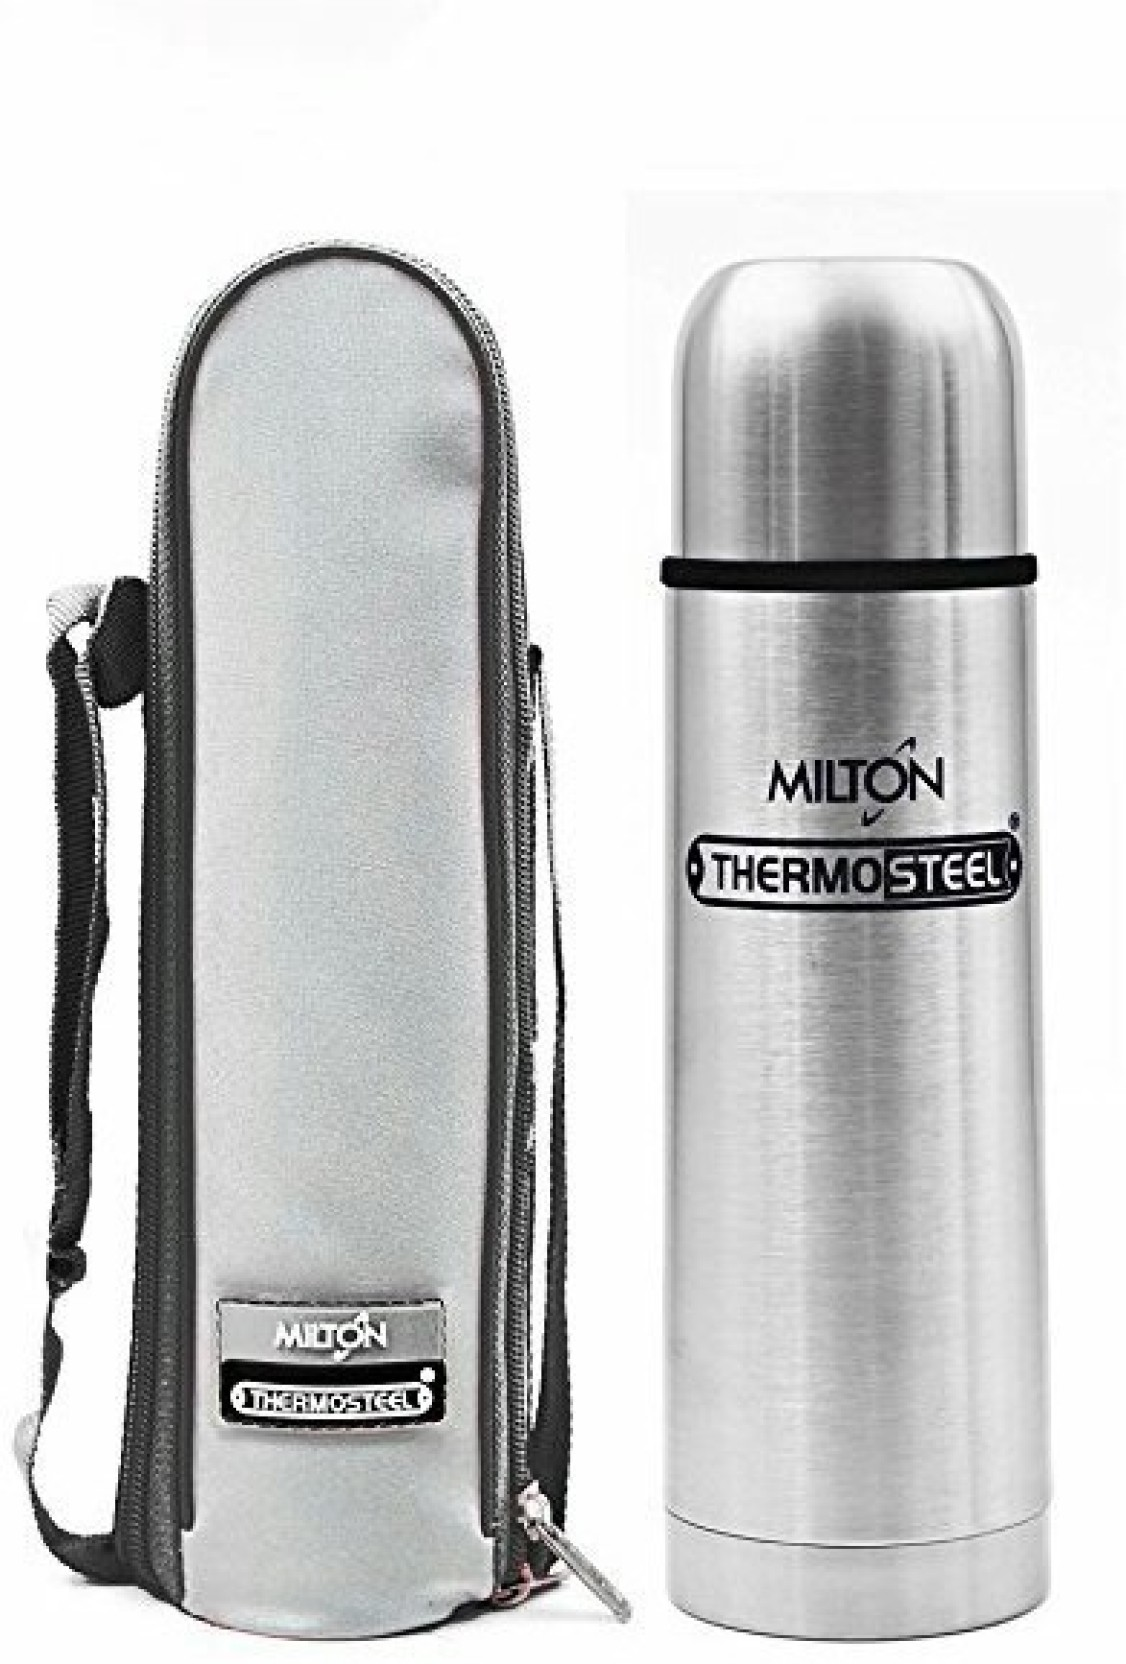 ade1473aae2 Milton Flip lid thermosteel 750ml bottle (24 hours cooling capacity) 750 ml  Flask (Pack of 1